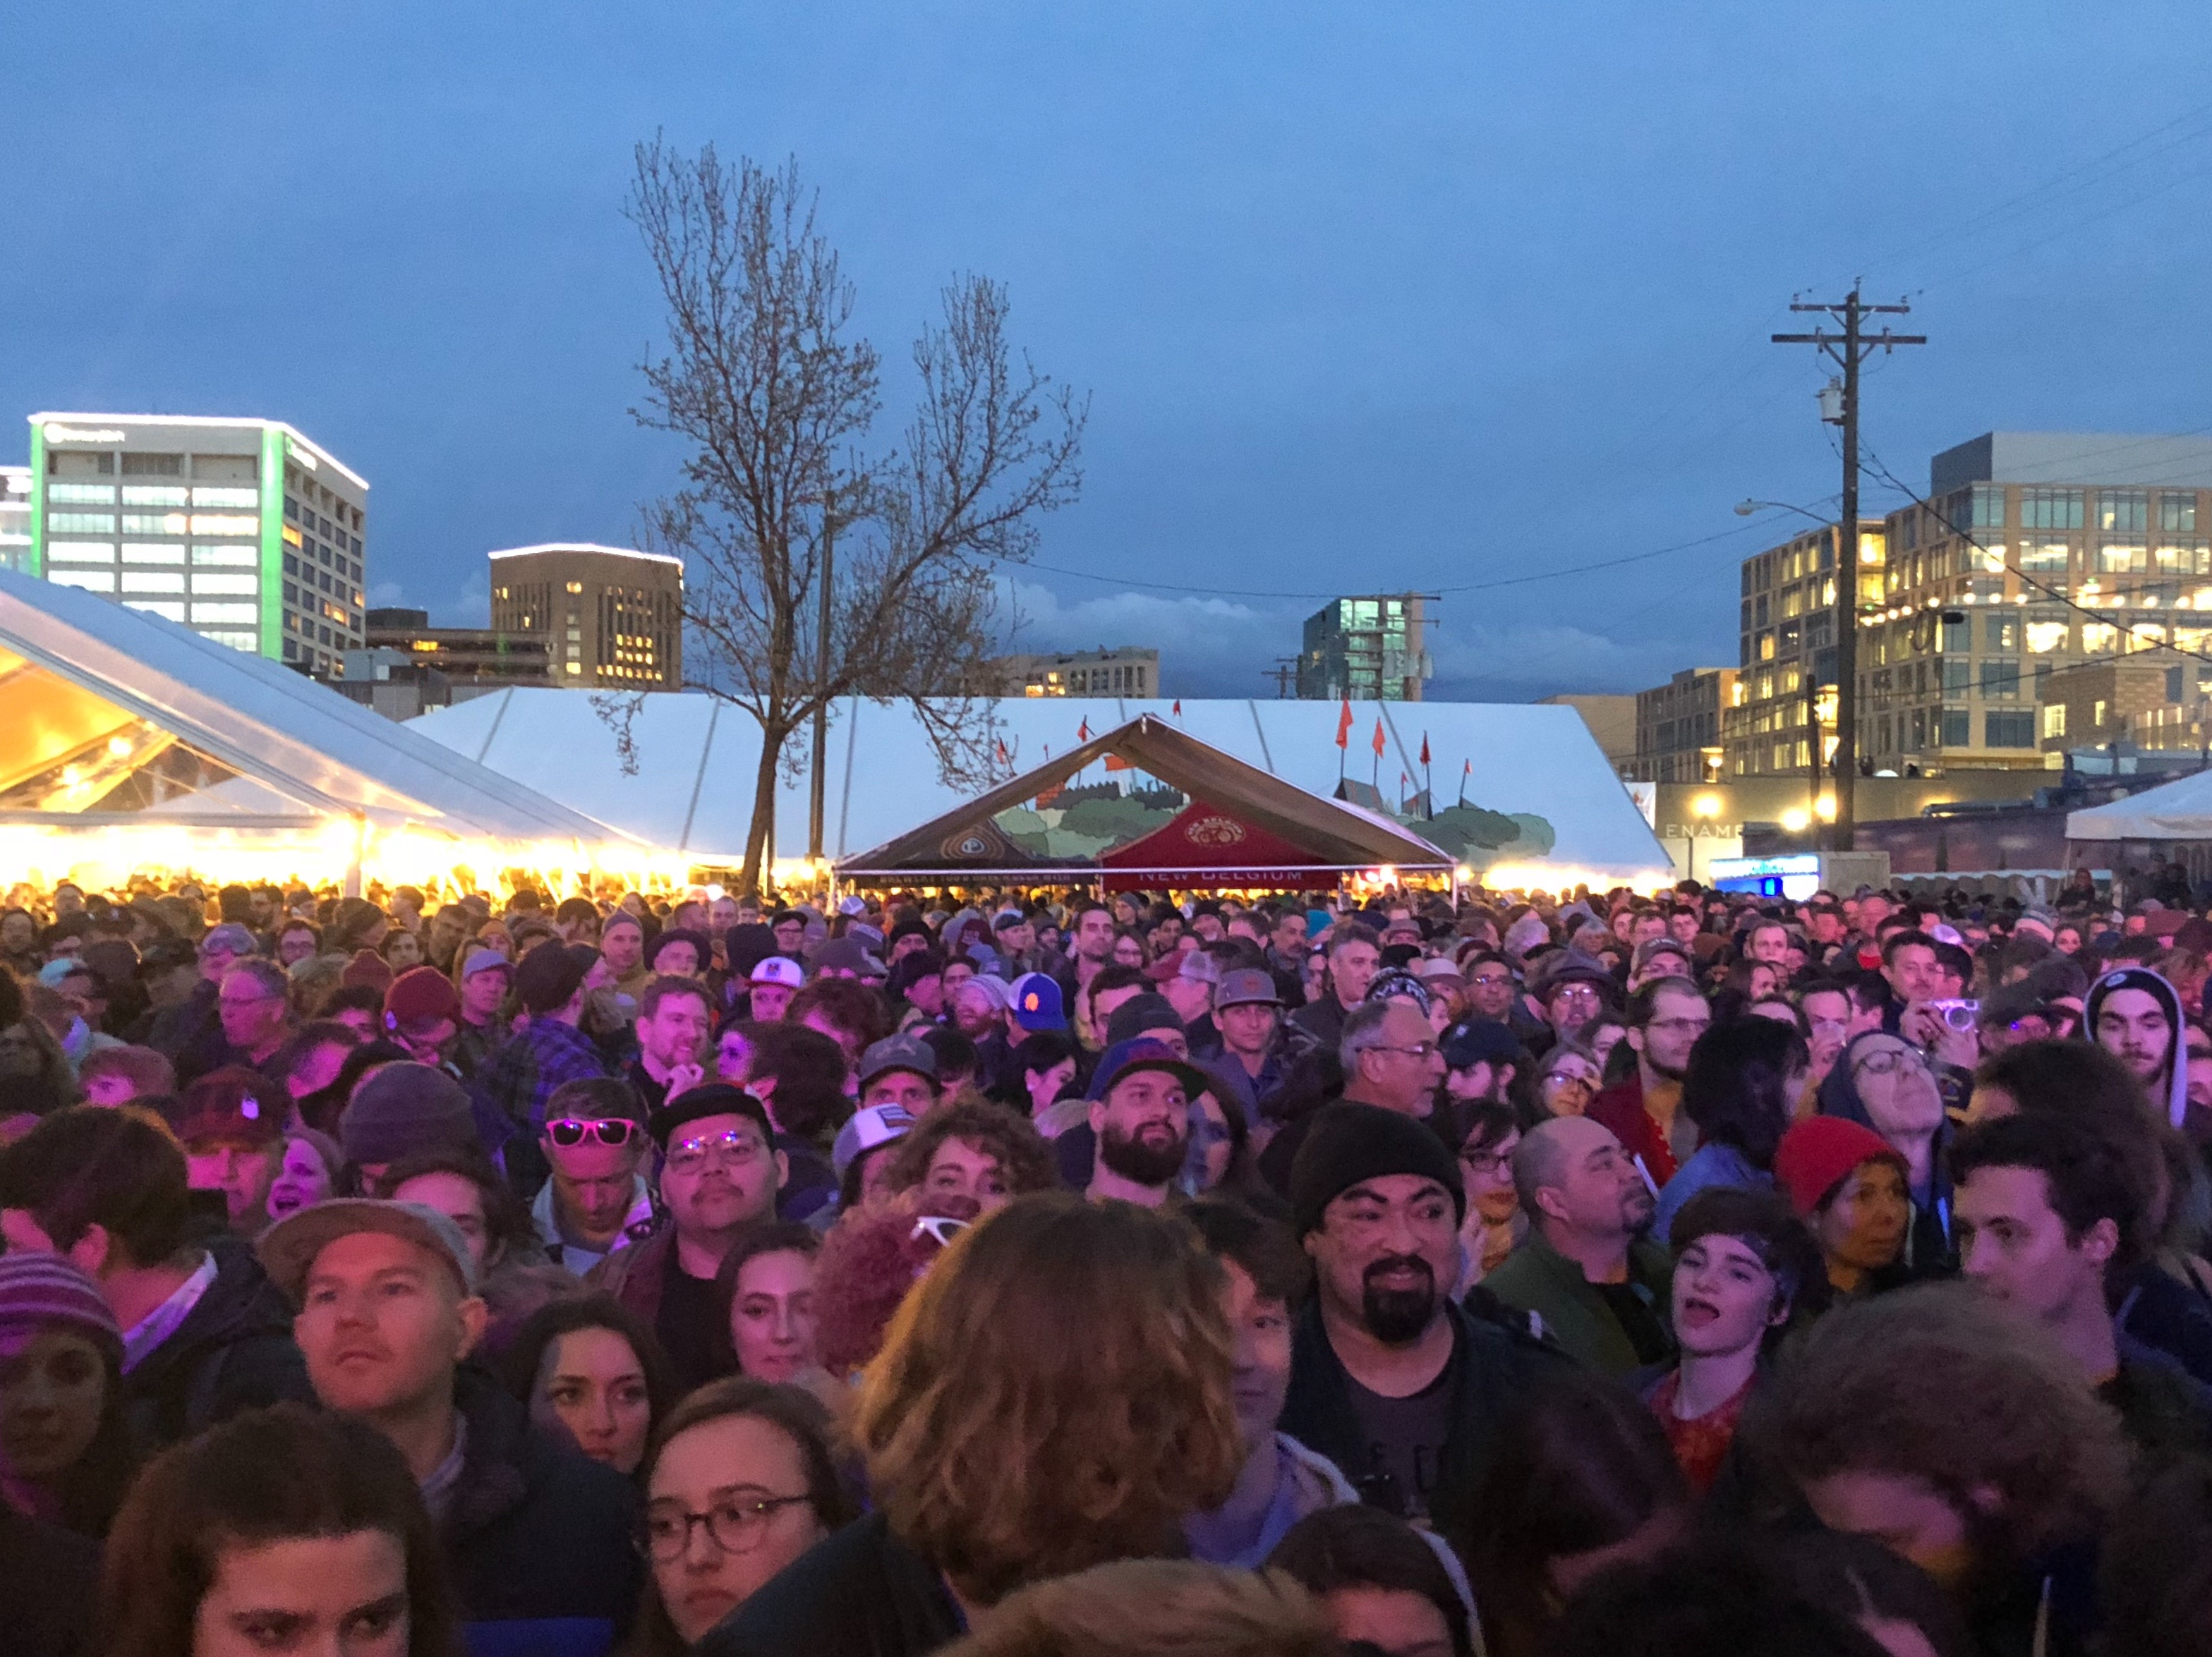 The crowd at Treefort waiting for George Clinton and Parliament Funkadelic.